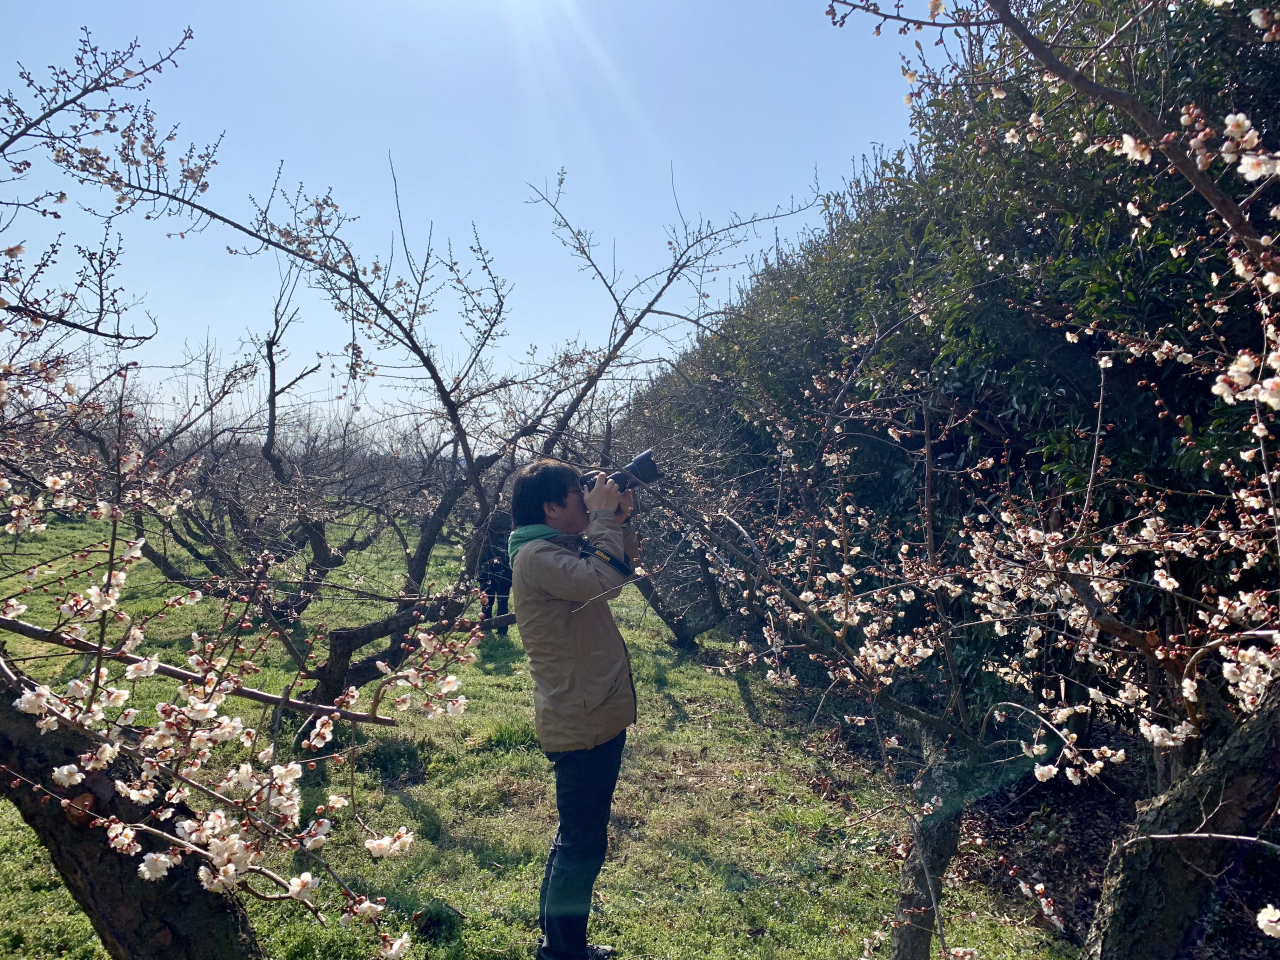 Apricot flowers will be in full bloom in March at Bohae Plum Farm.(By Im Eun-byel / The Korea Herald)